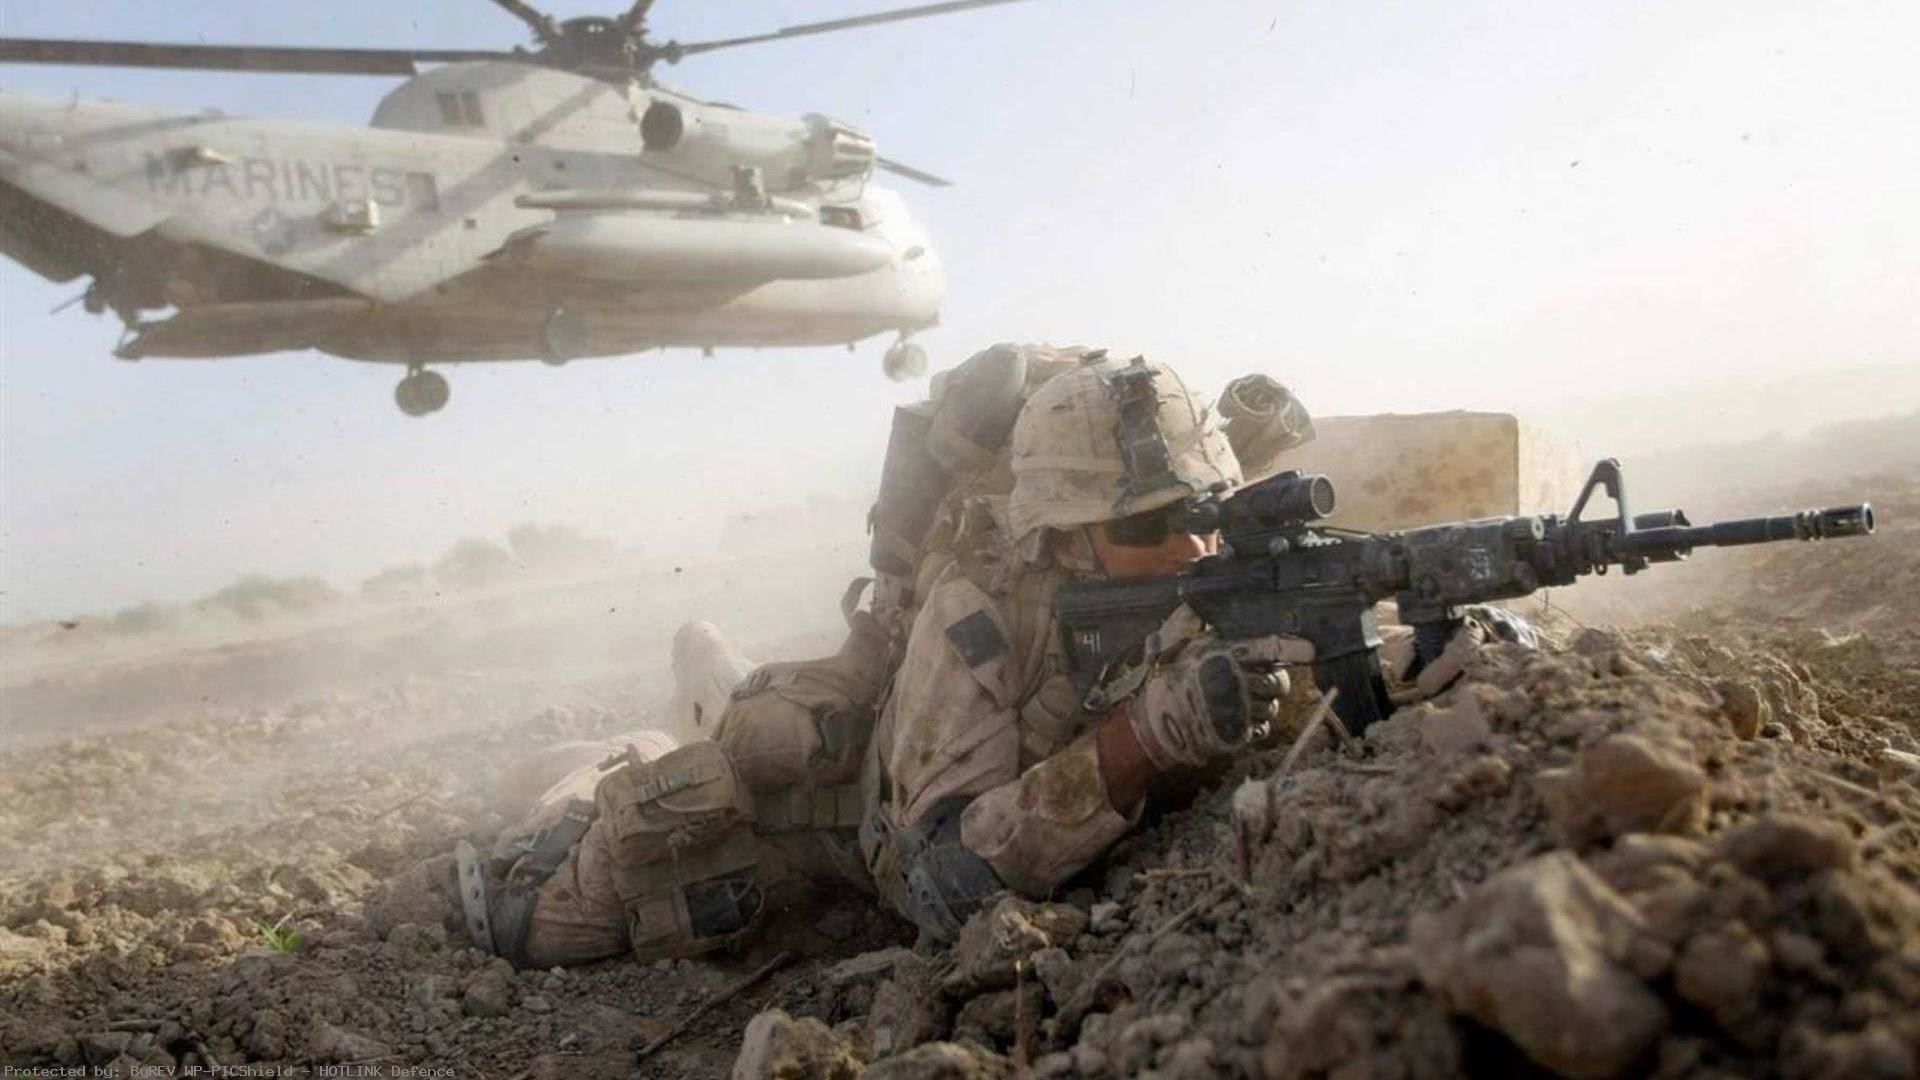 1920x1080 US-MARINES-IN-AFGHANISTAN-HEAVY-COMBAT-1080P-DURING-